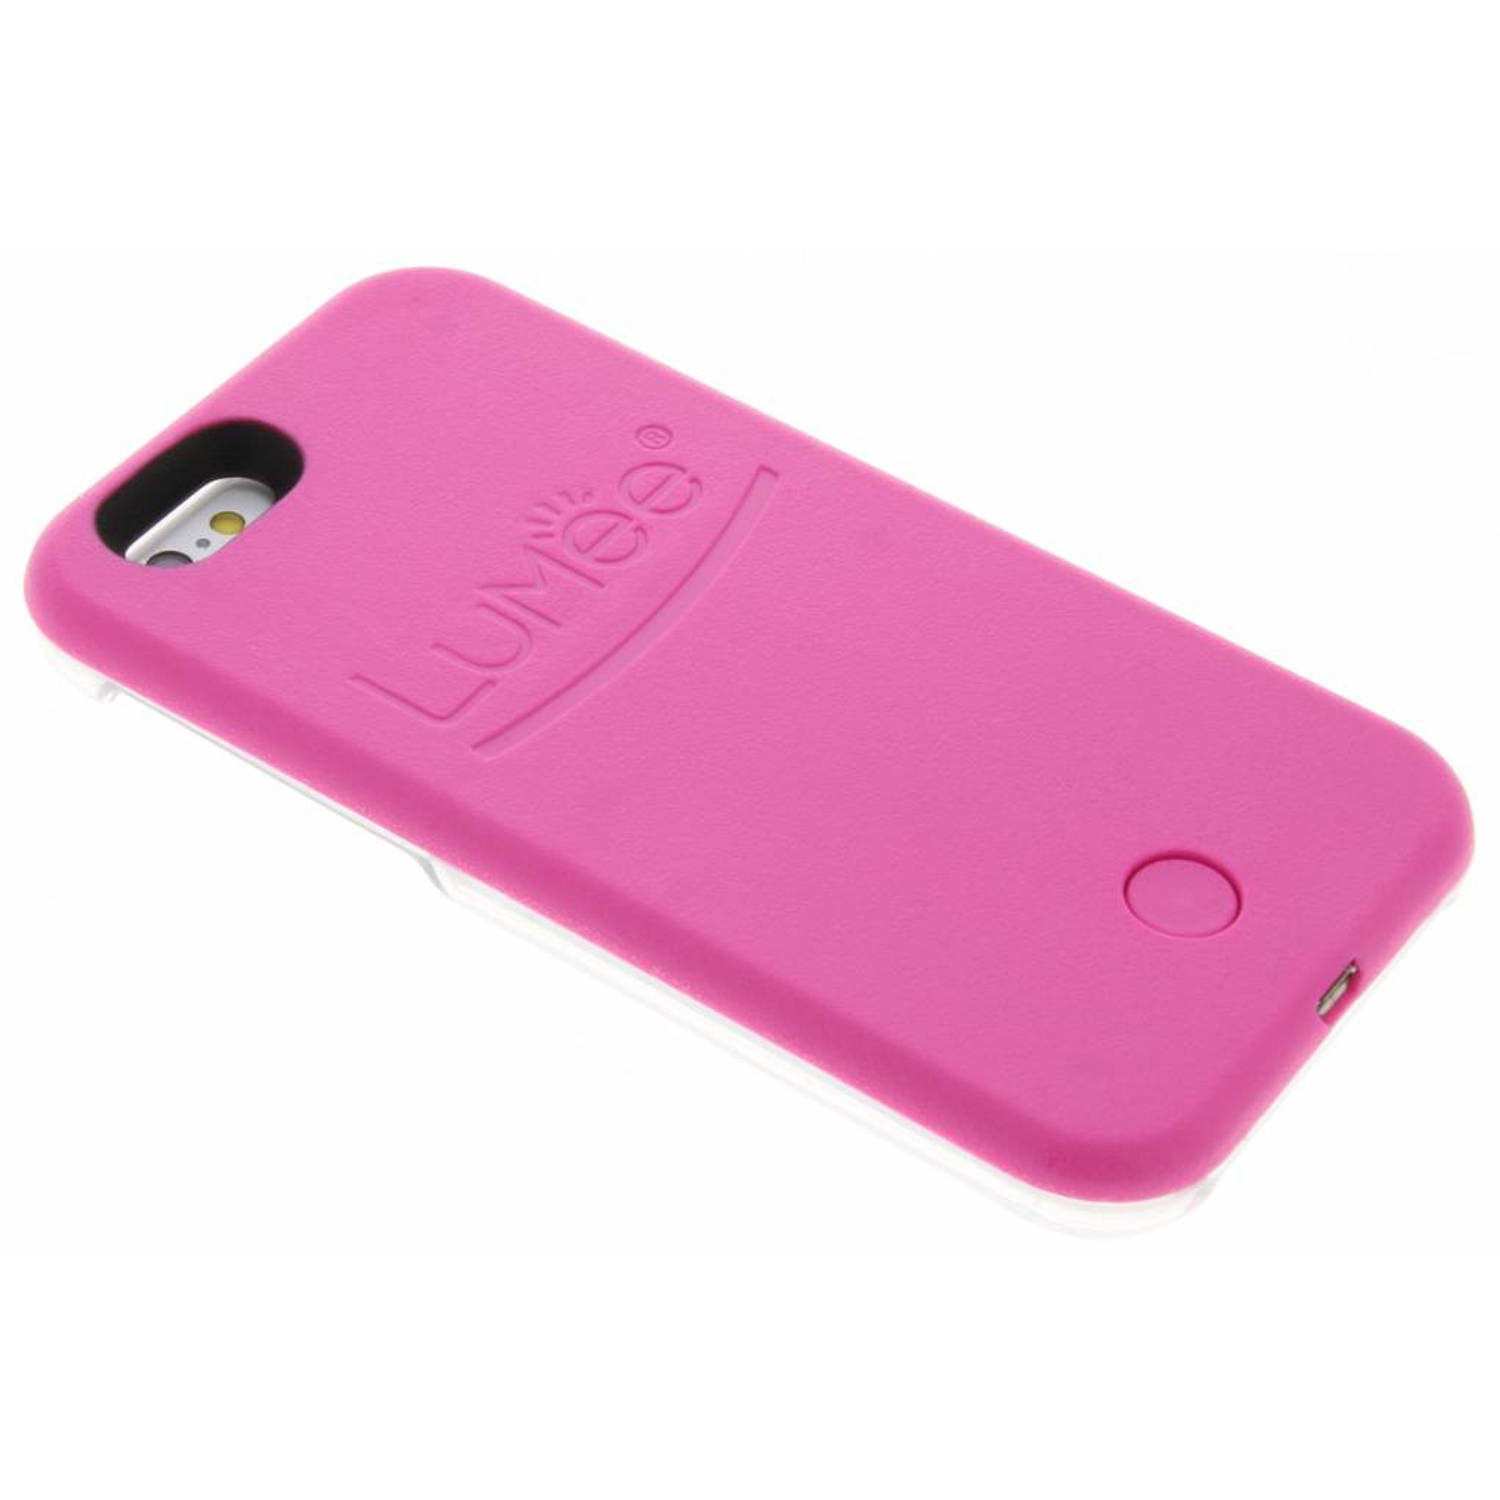 Roze Lighted Hard Case voor de iPhone 6 / 6s